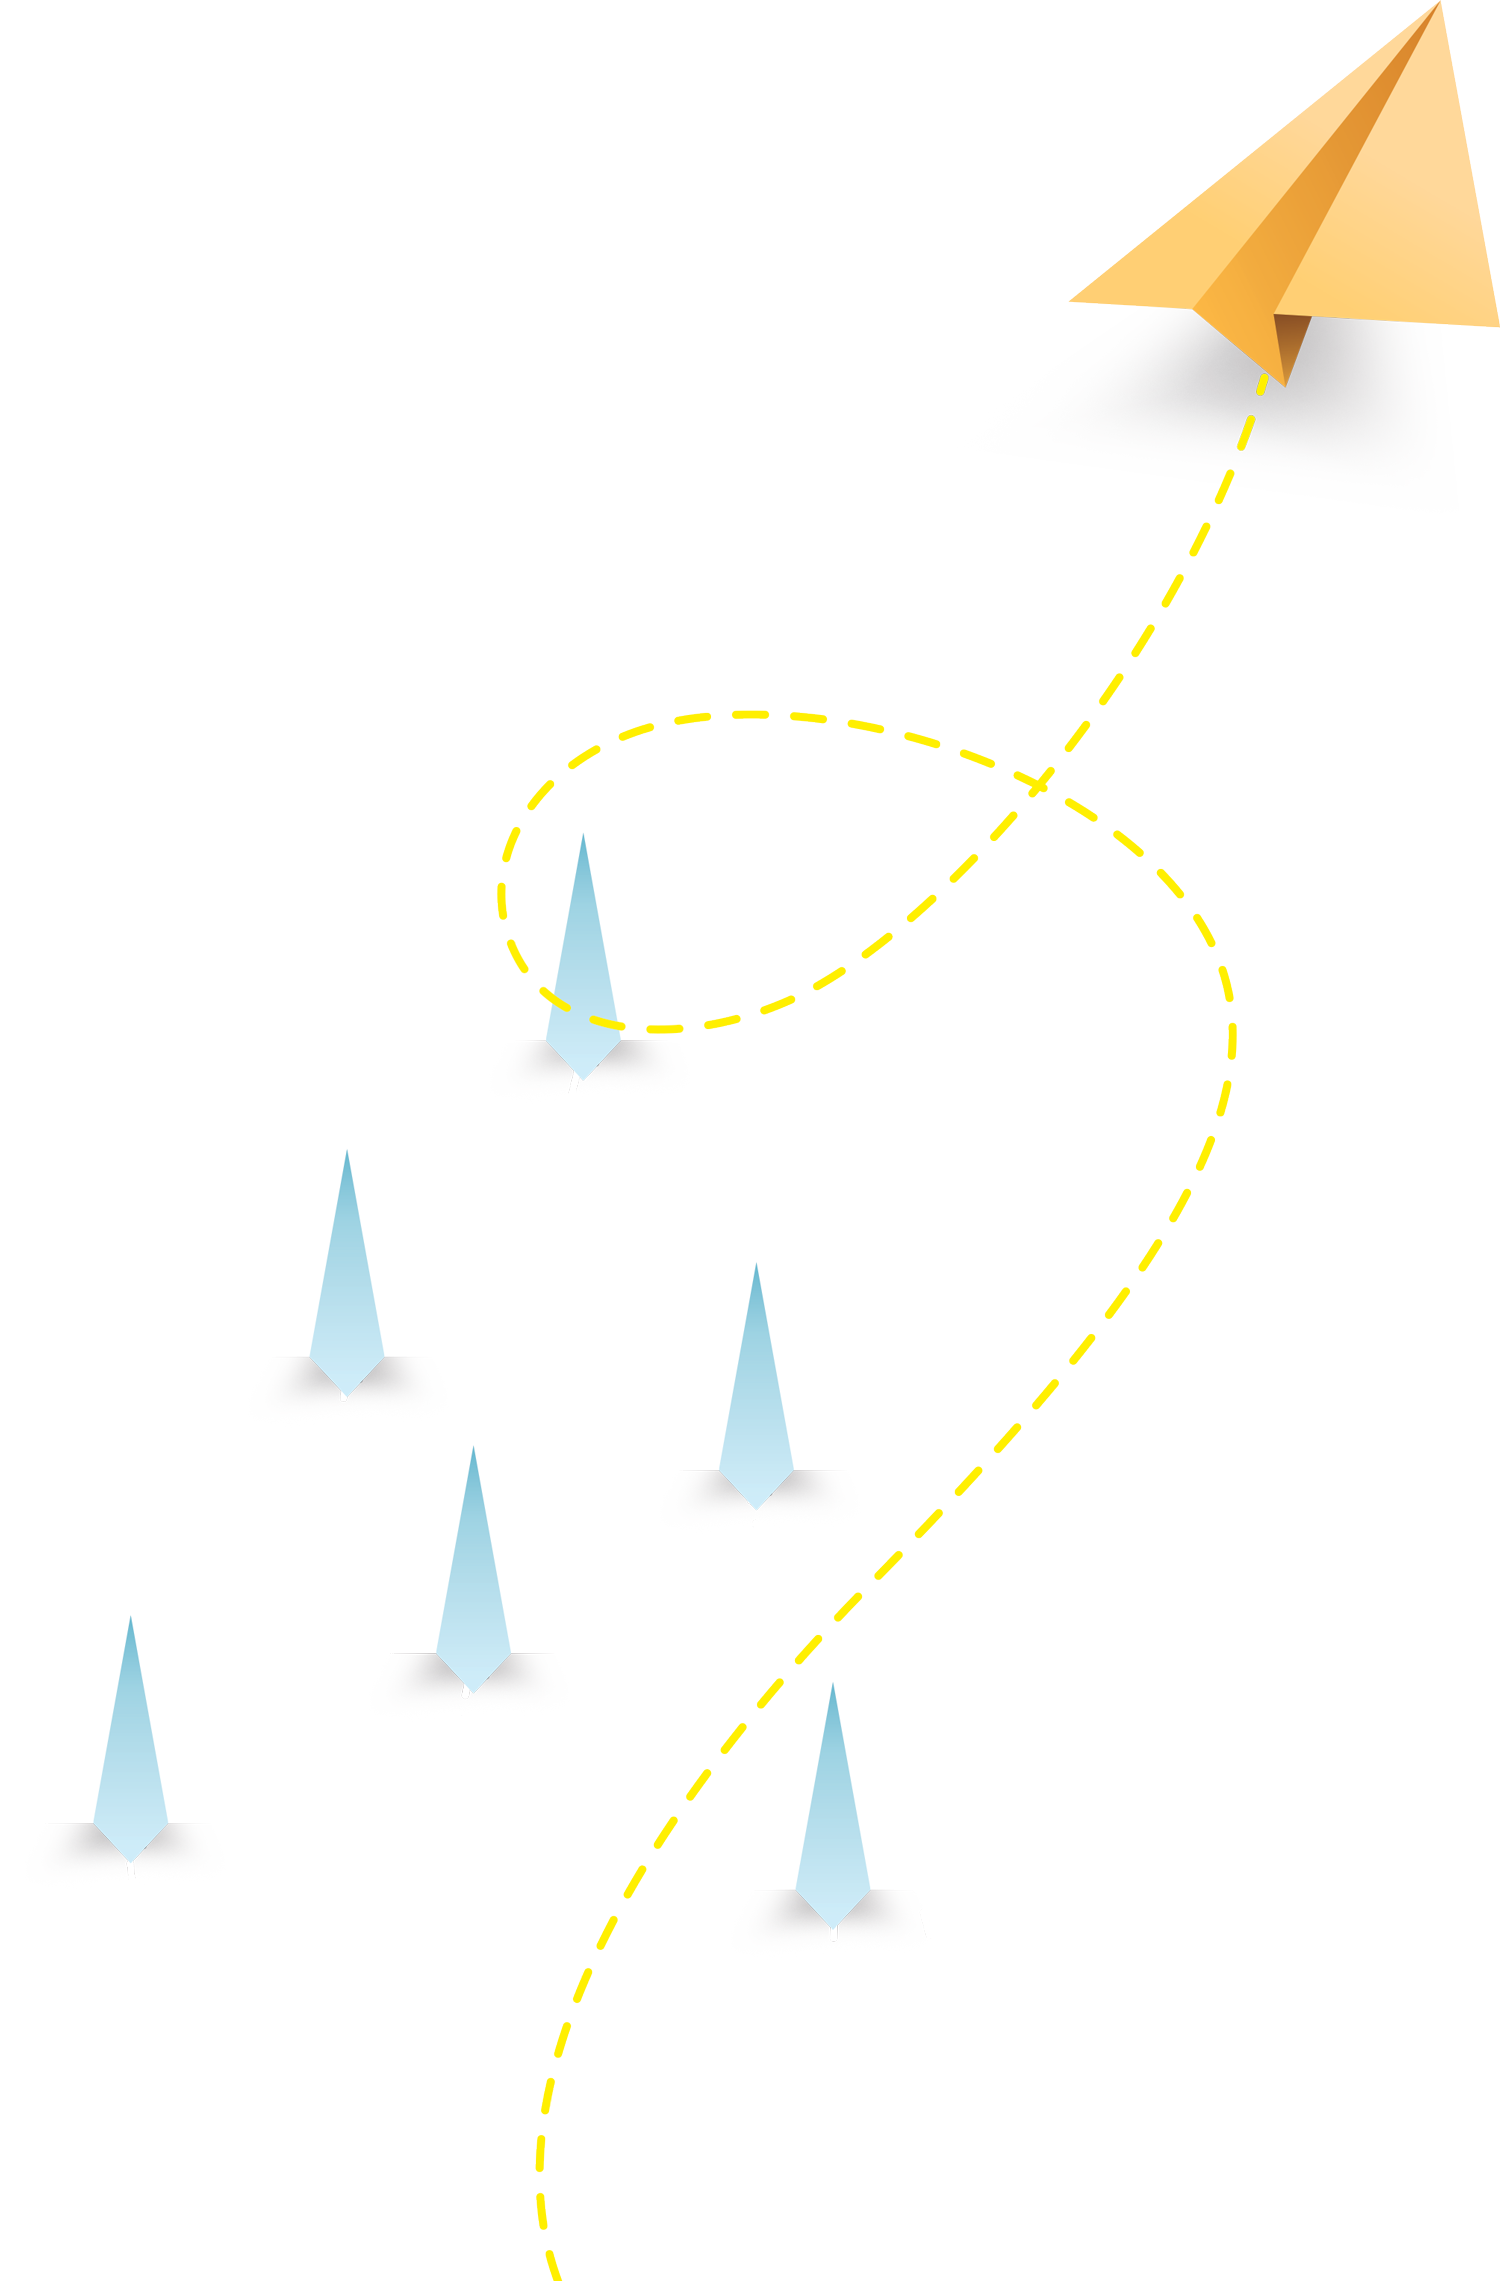 Illustration of paper airplanes flying